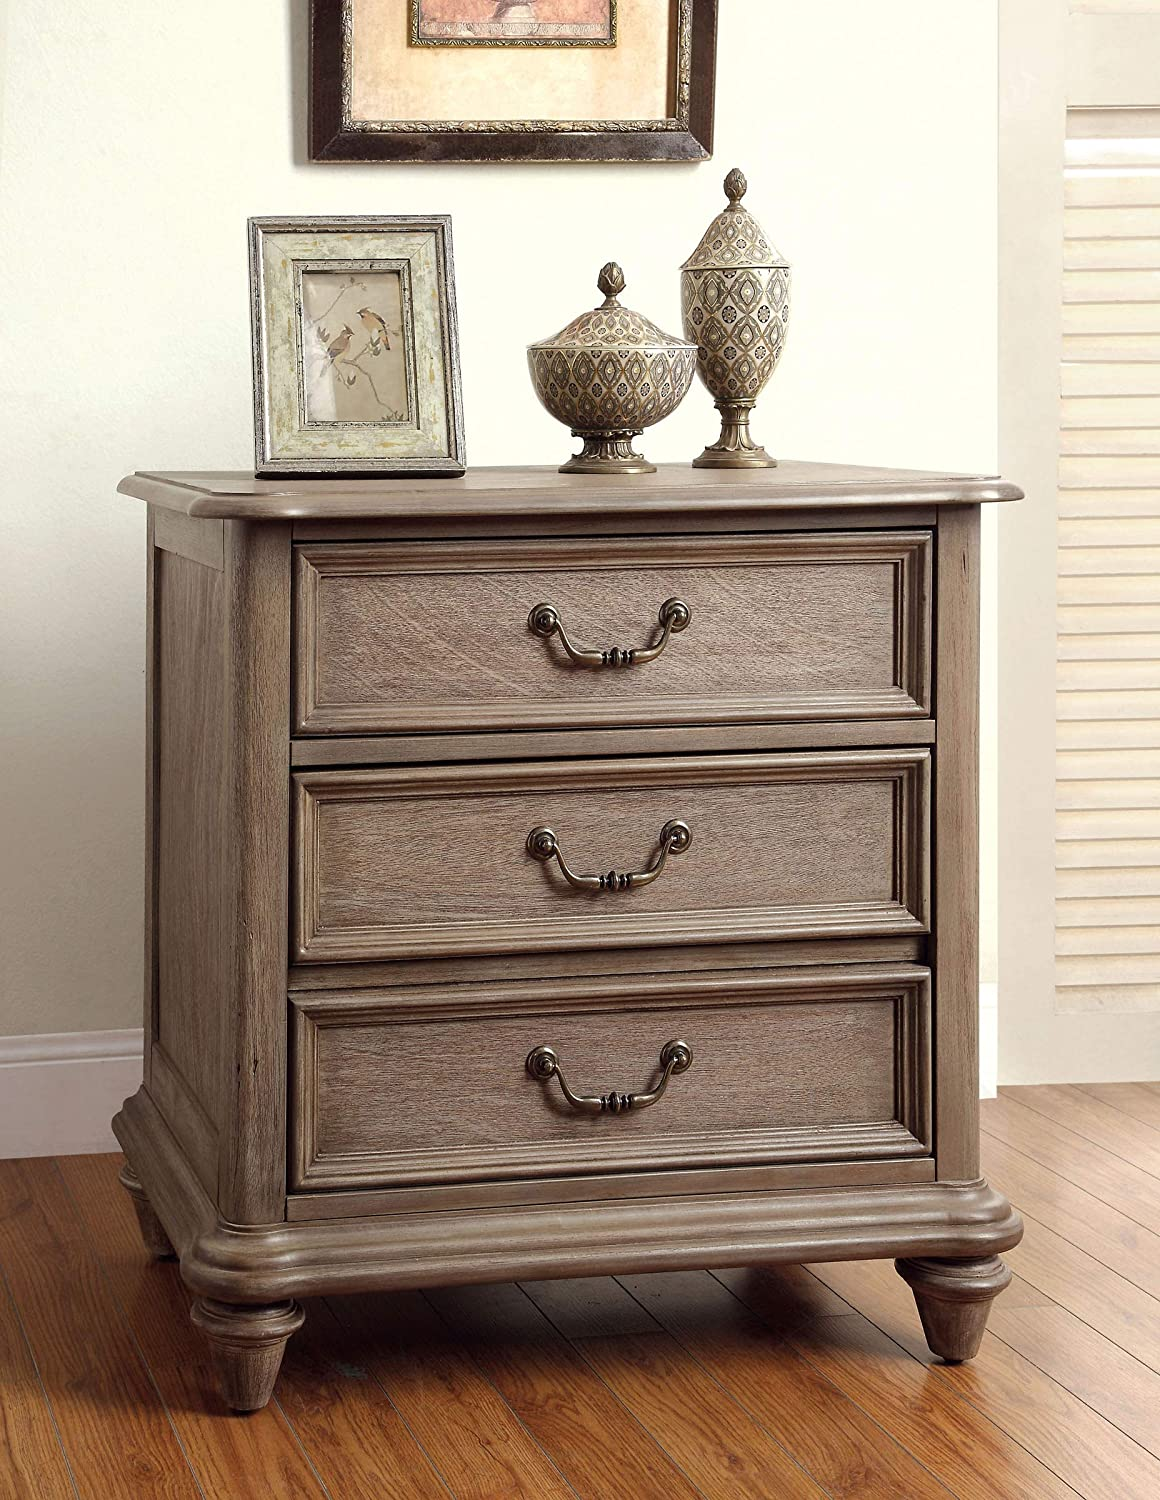 William's Home Furnishing Belgrade I Night Stand, Rustic Natural Tone